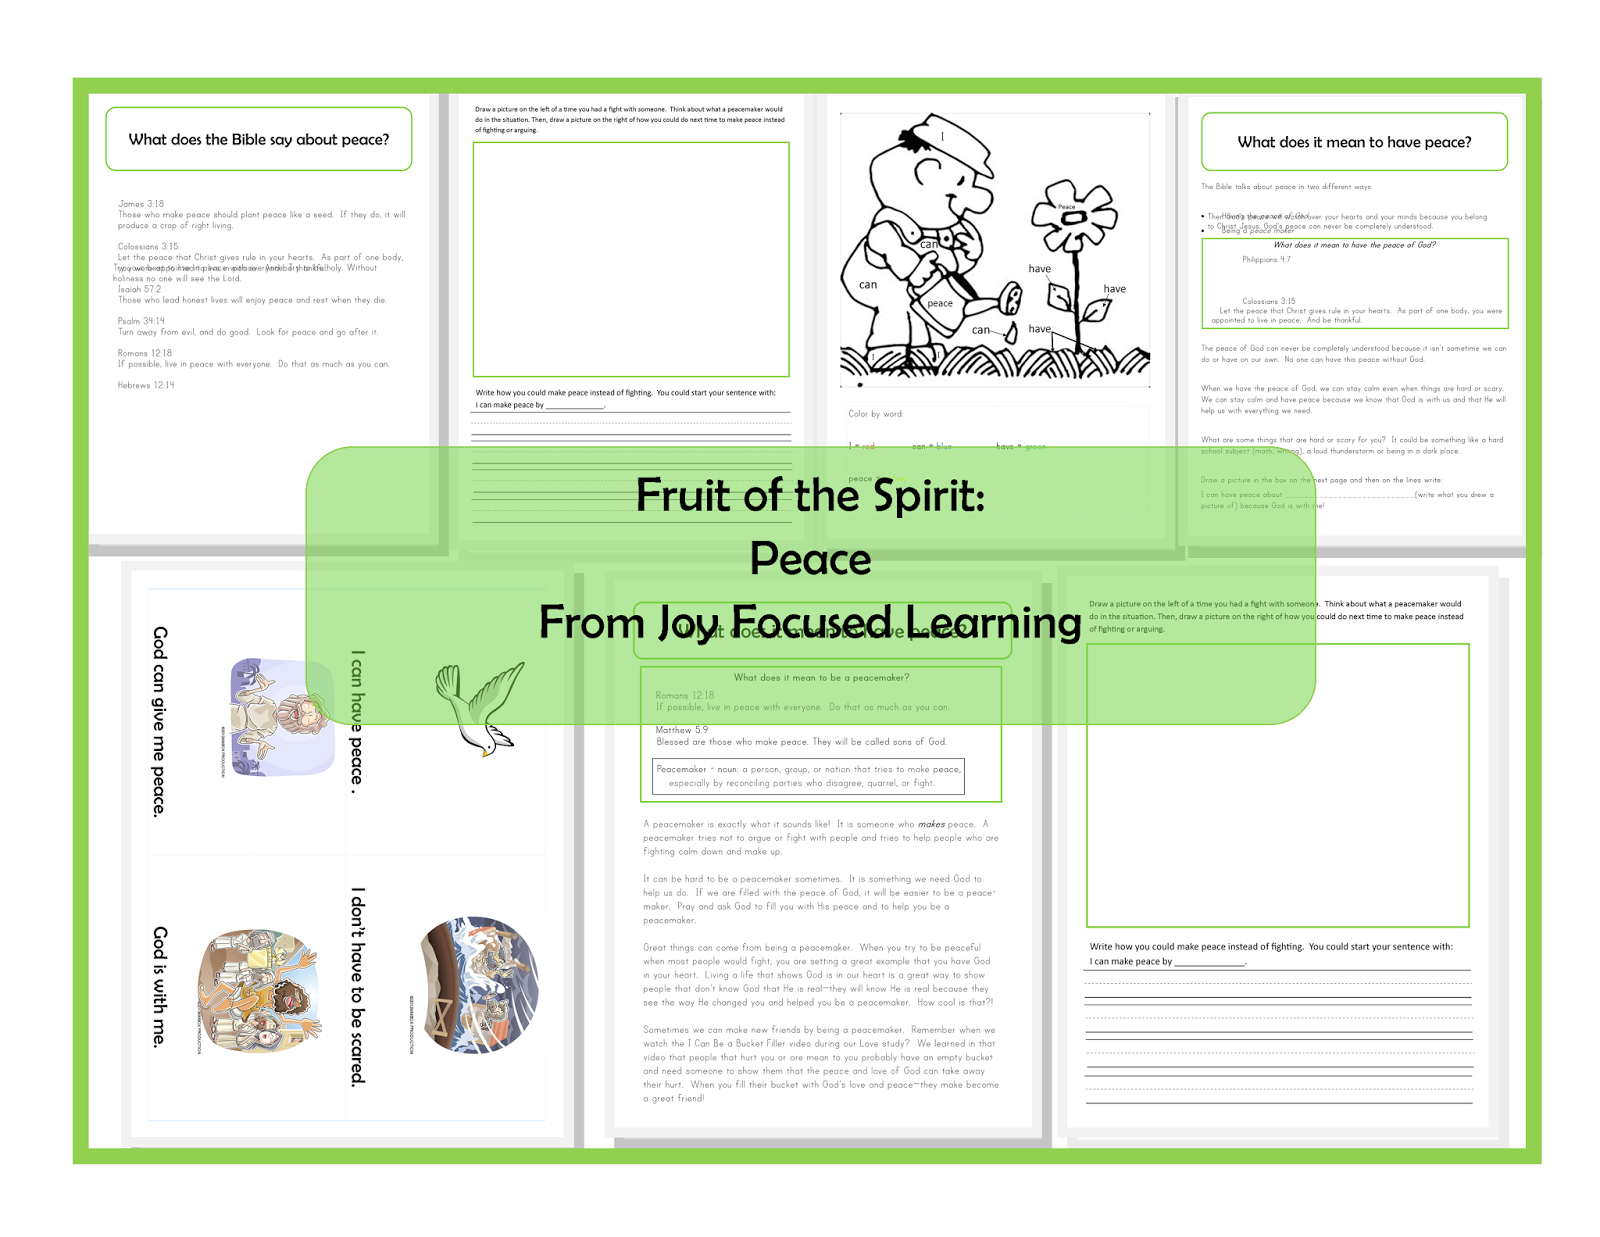 Fruit of the Spirit: Peace | Joy Focused Learning | VBS 2015 ...